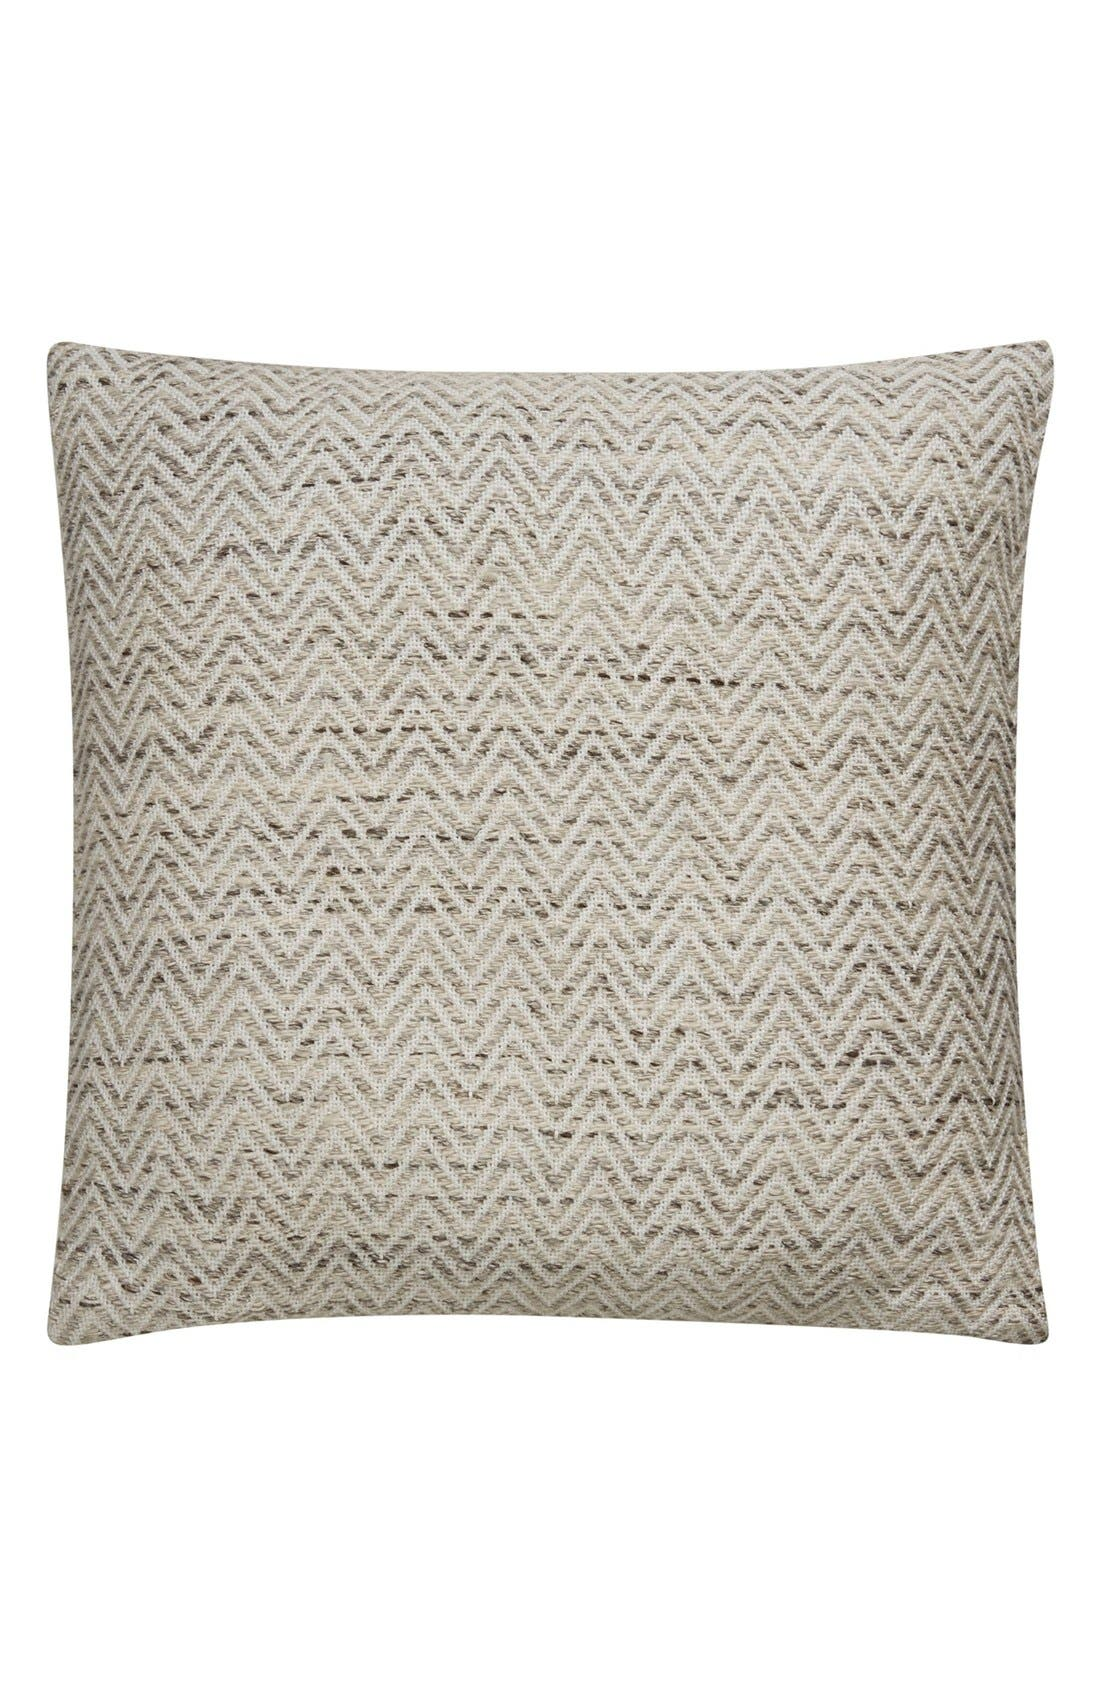 'Peykan' Pillow,                             Main thumbnail 1, color,                             IVORY/ BLACK